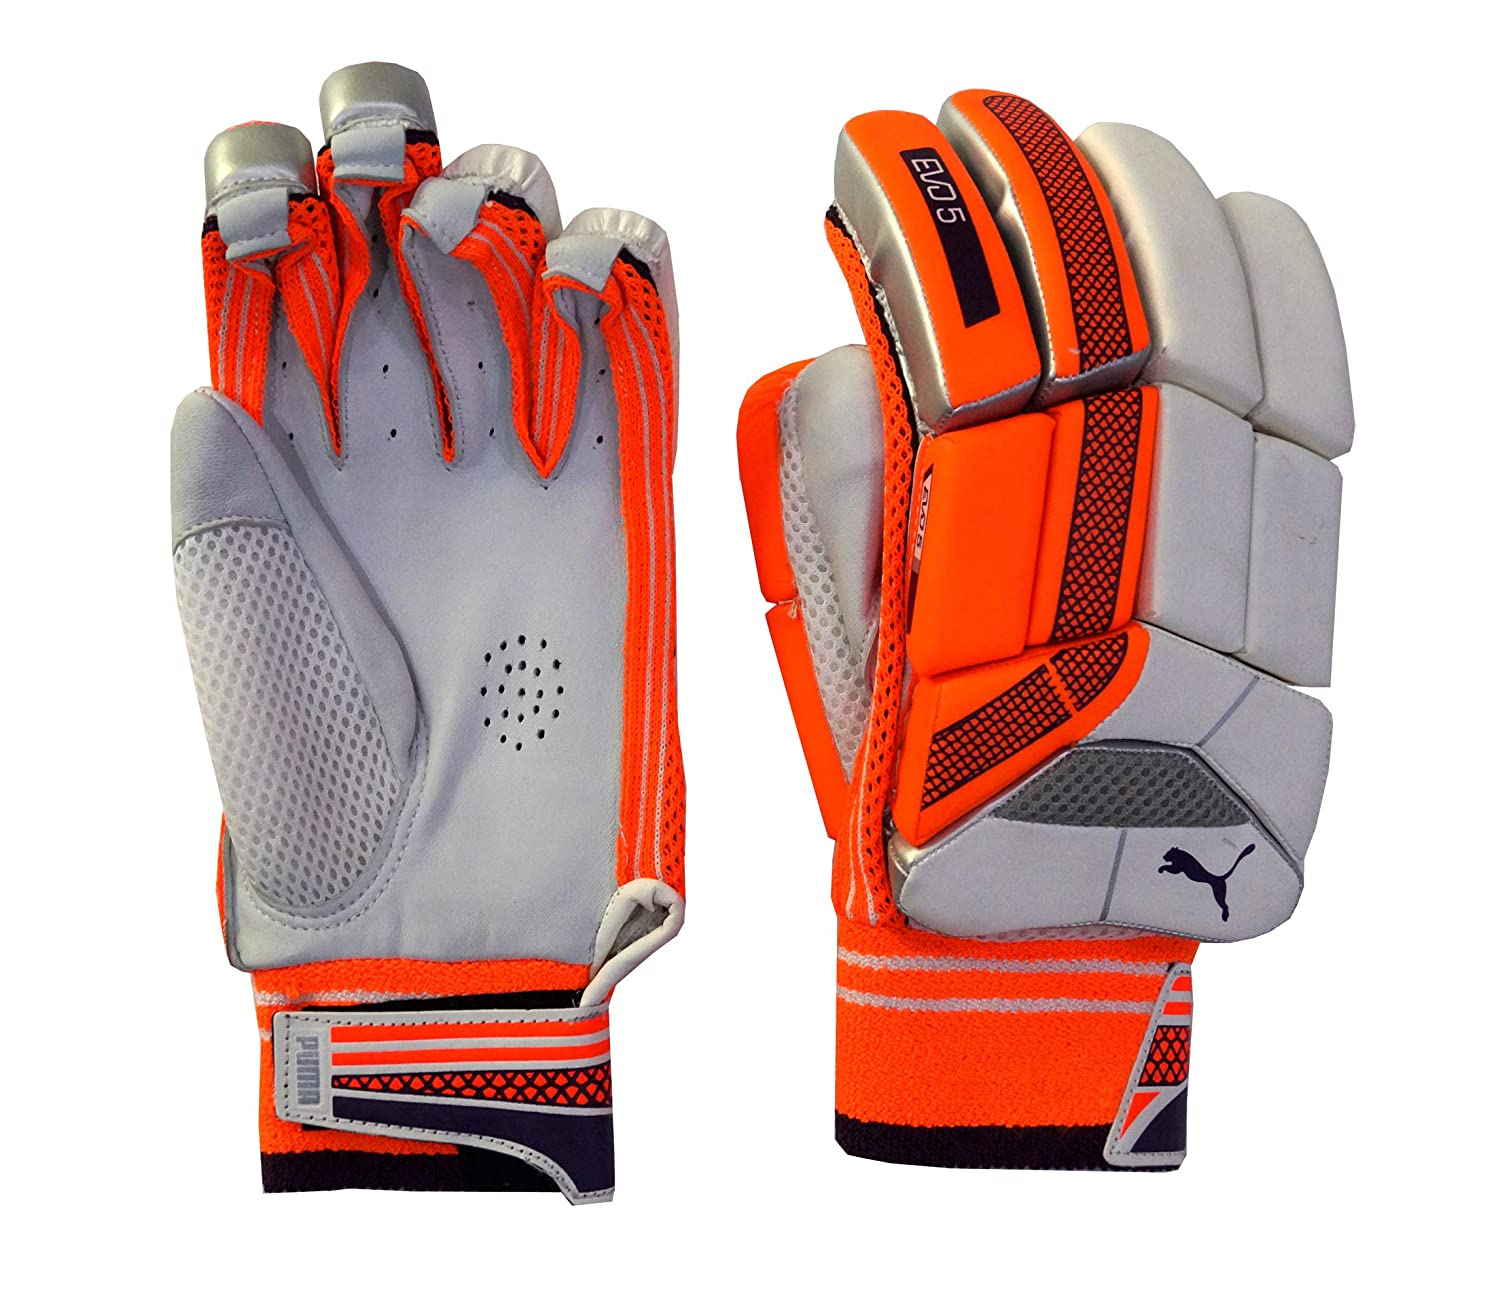 f3729883026 Buy Puma Youth s Evo 5 Orange Cricket Batting Gloves Right Hand Online at  Low Prices in India - Amazon.in